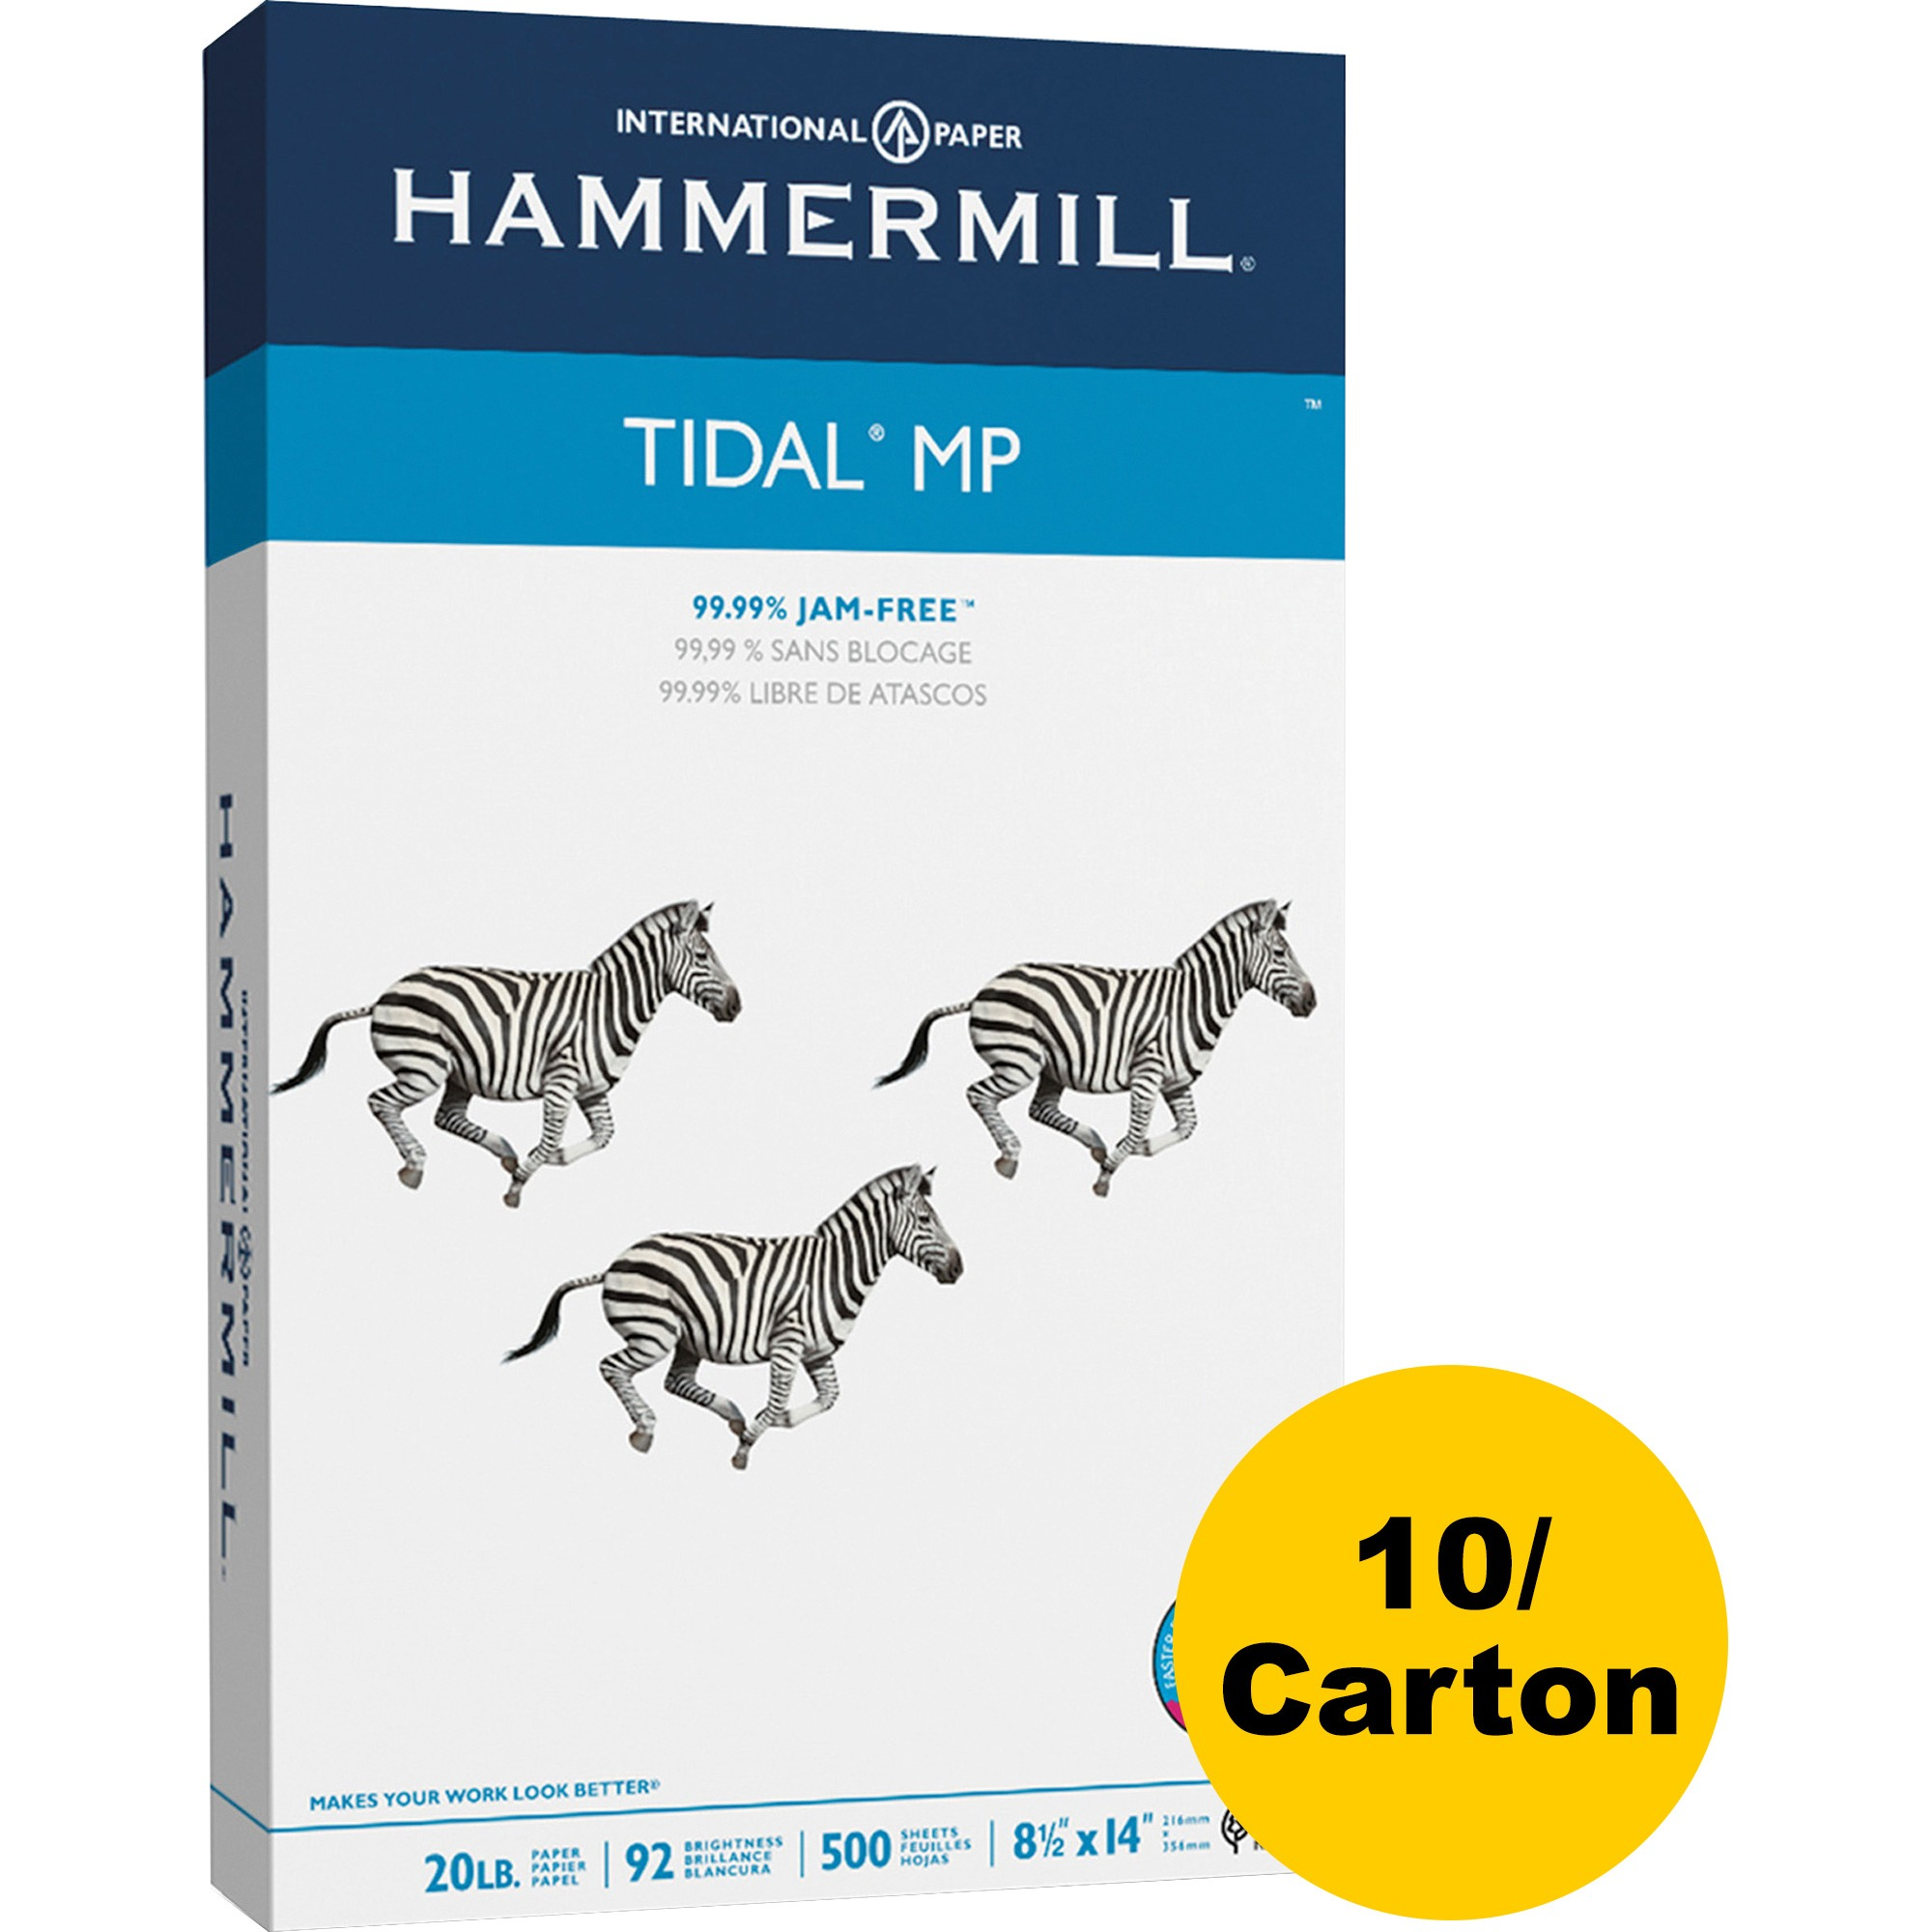 Hammermill, HAM162016CT, Tidal MP Paper, 5000 / Carton, White